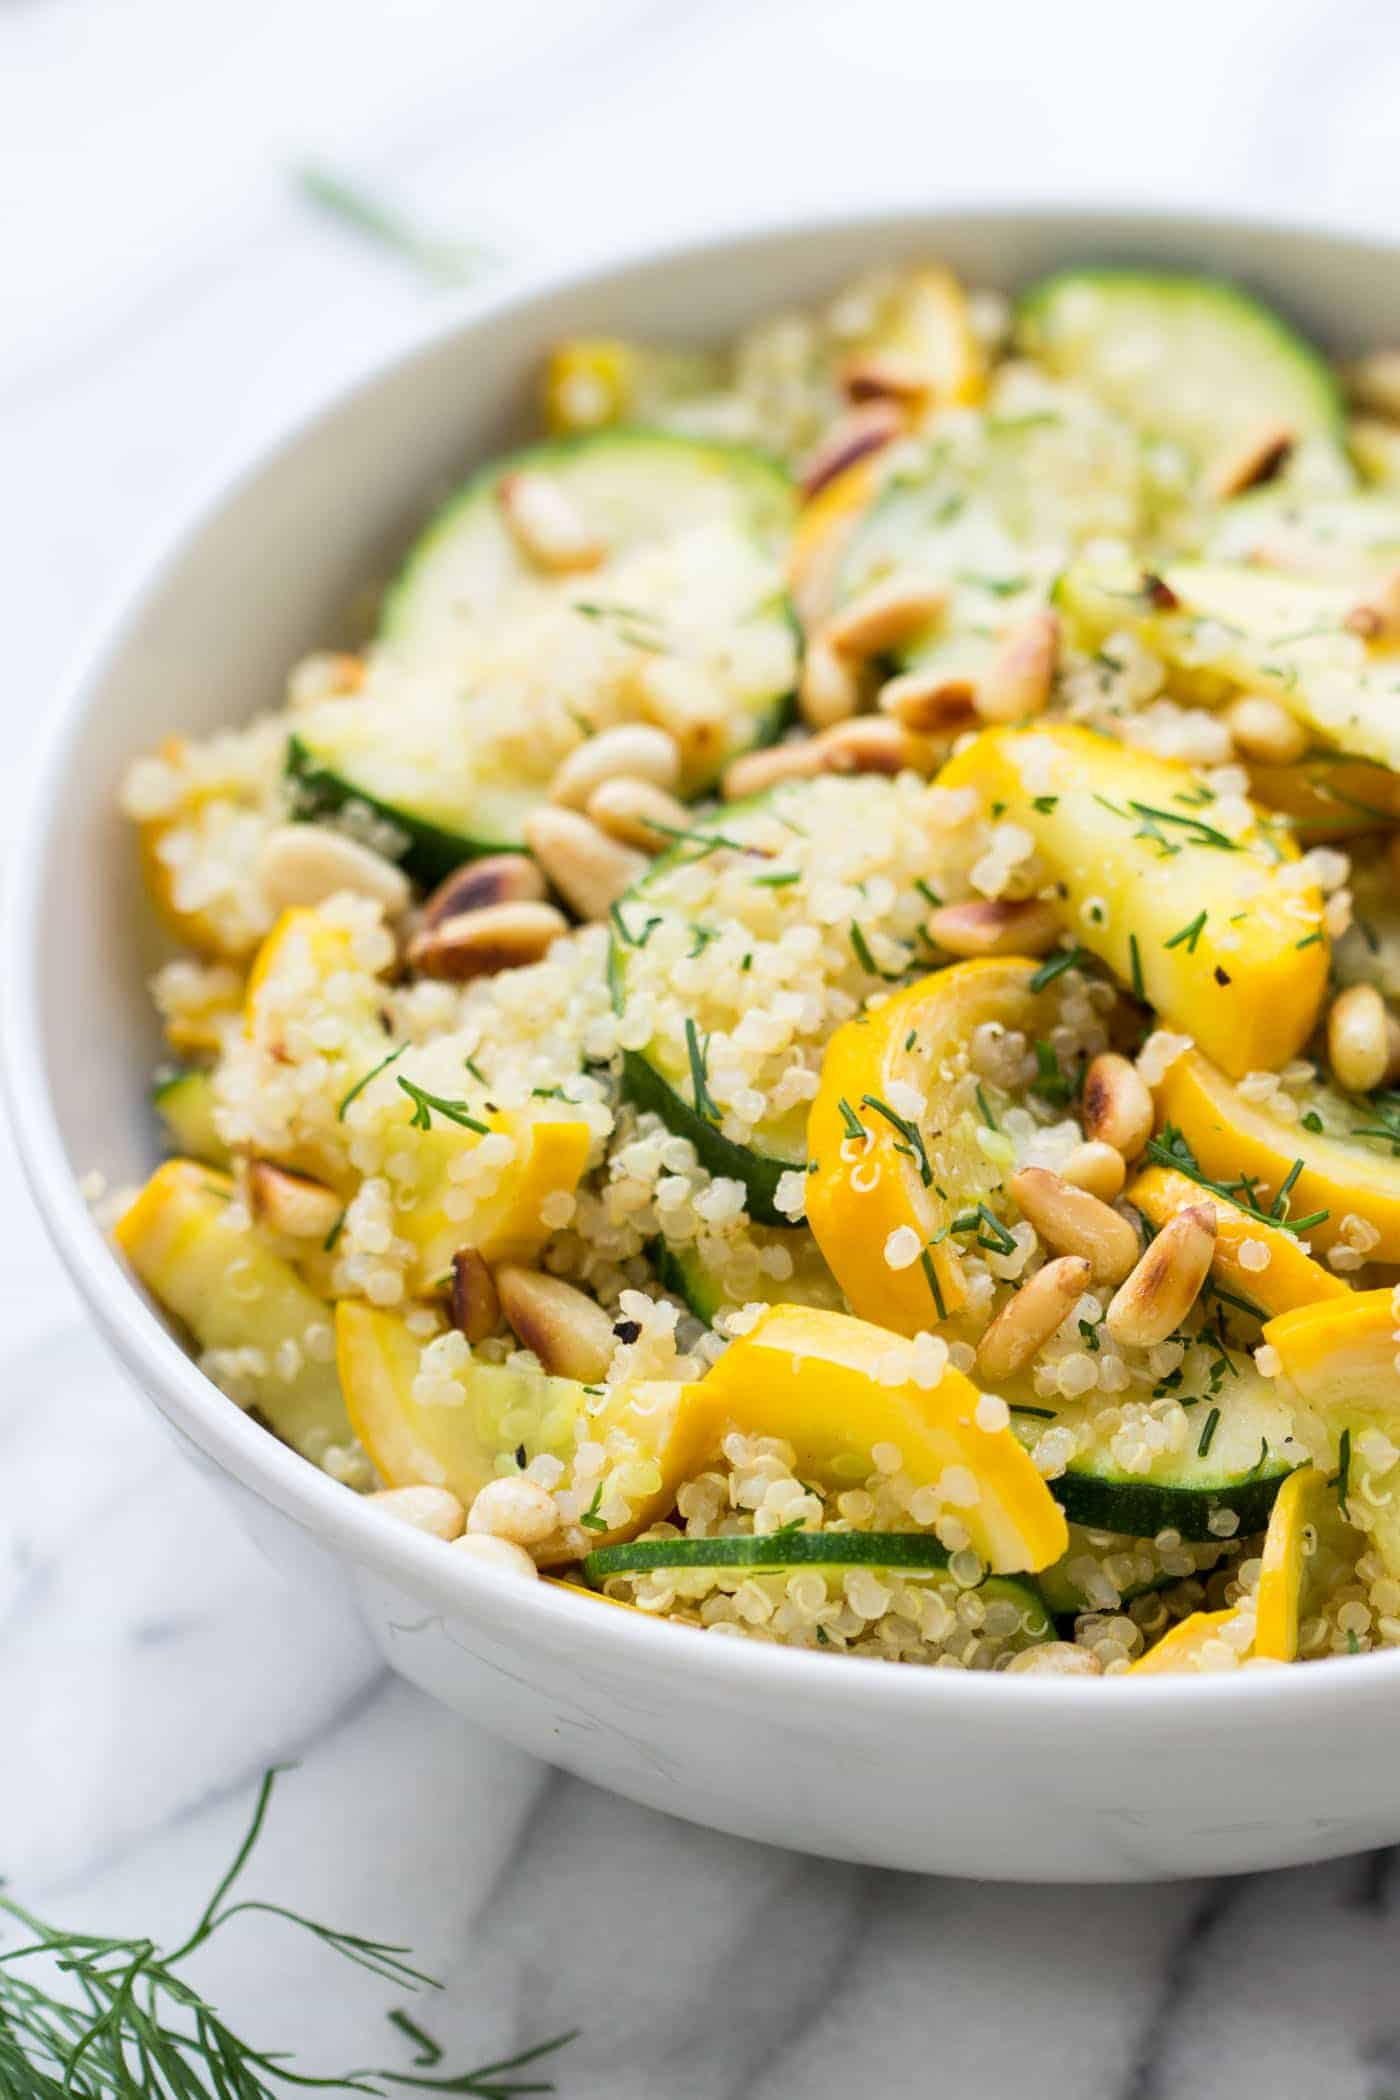 A simple summer salad >> Zucchini Quinoa Salad with a Lemon-Dill Dressing!